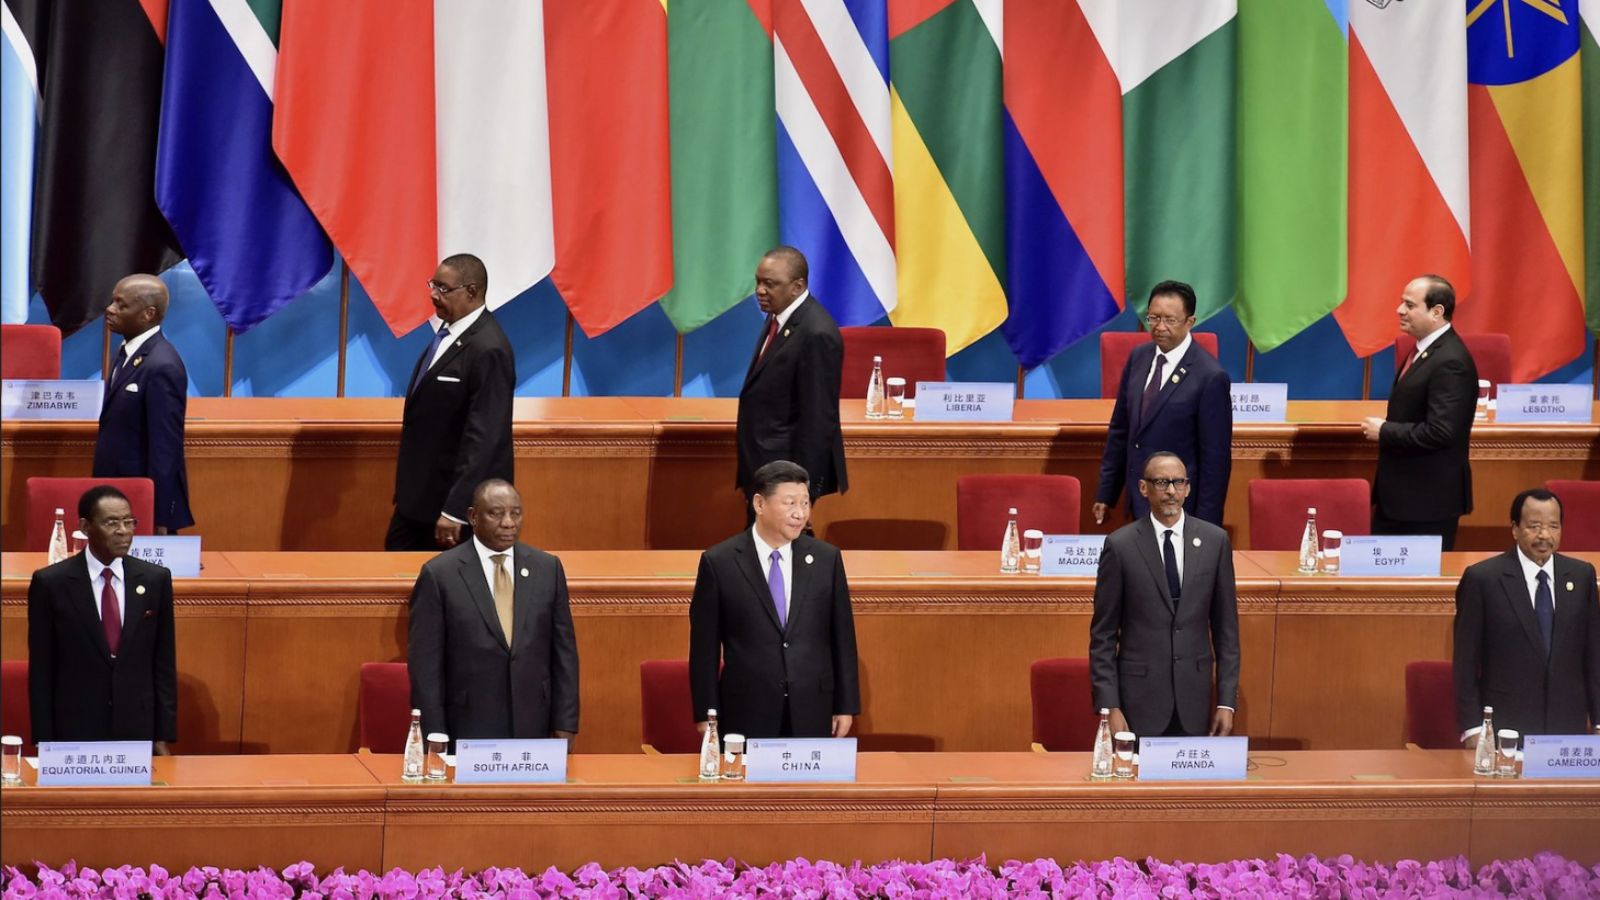 Xi Jinping and African country leaders stand behind rows of chairs, with country flags in the background.